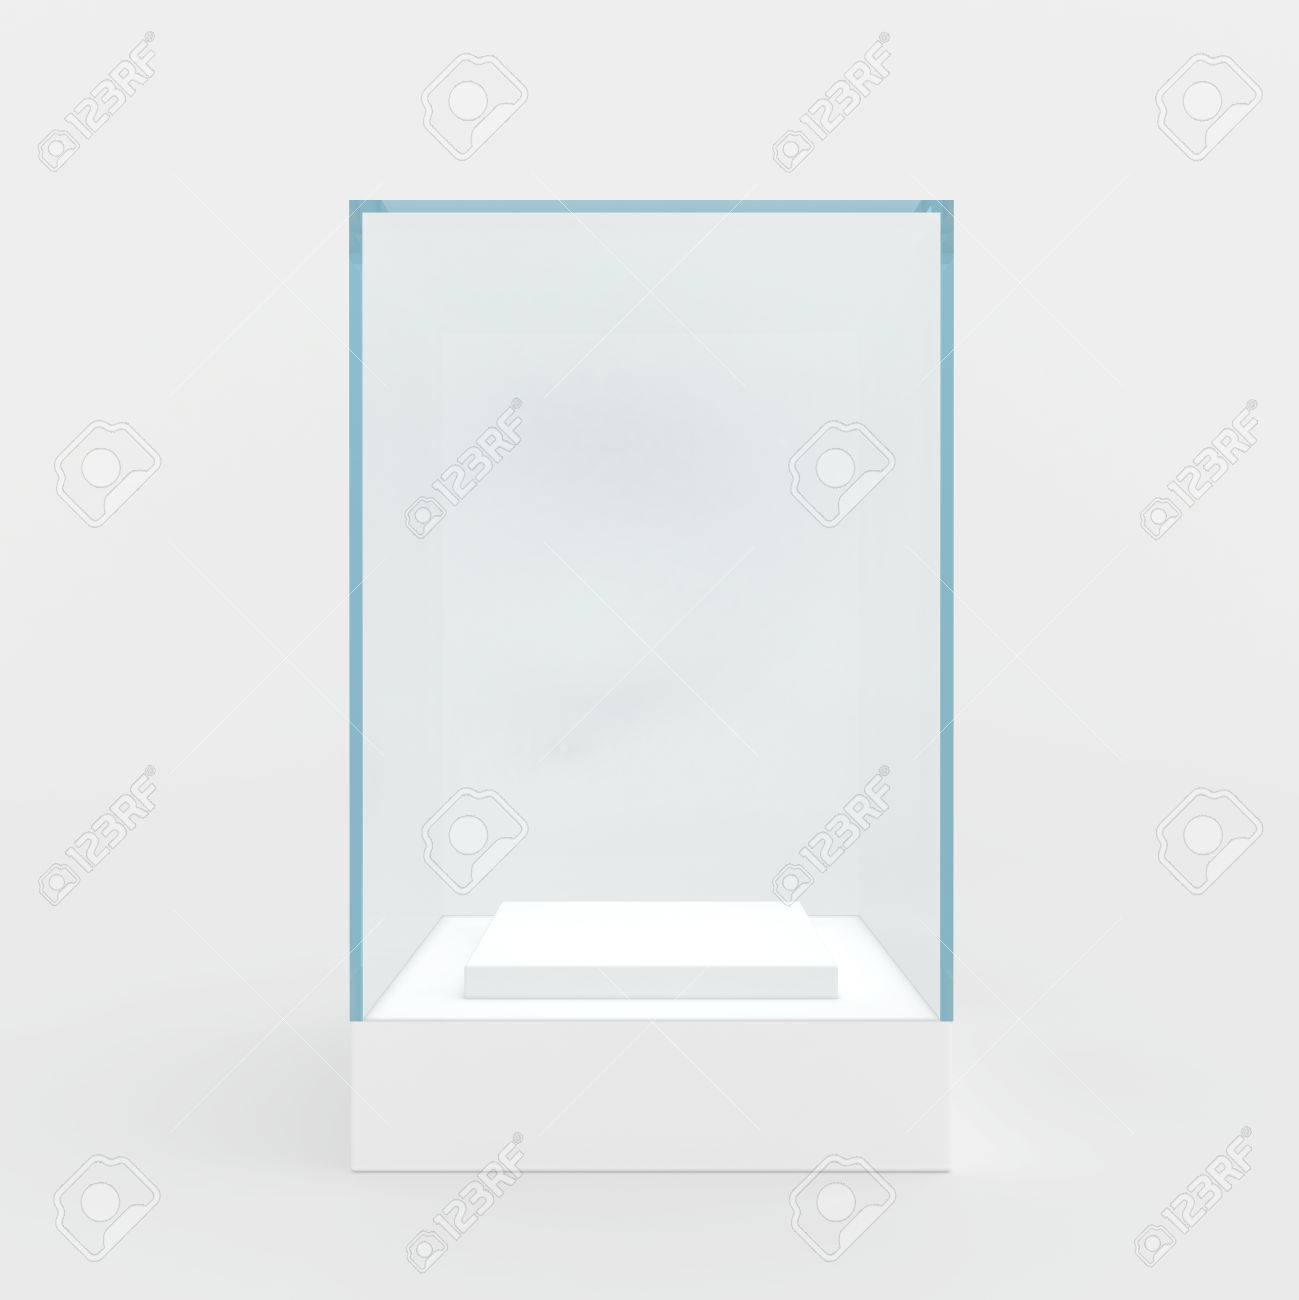 3d Empty glass showcase for exhibit. gray background - 45789847